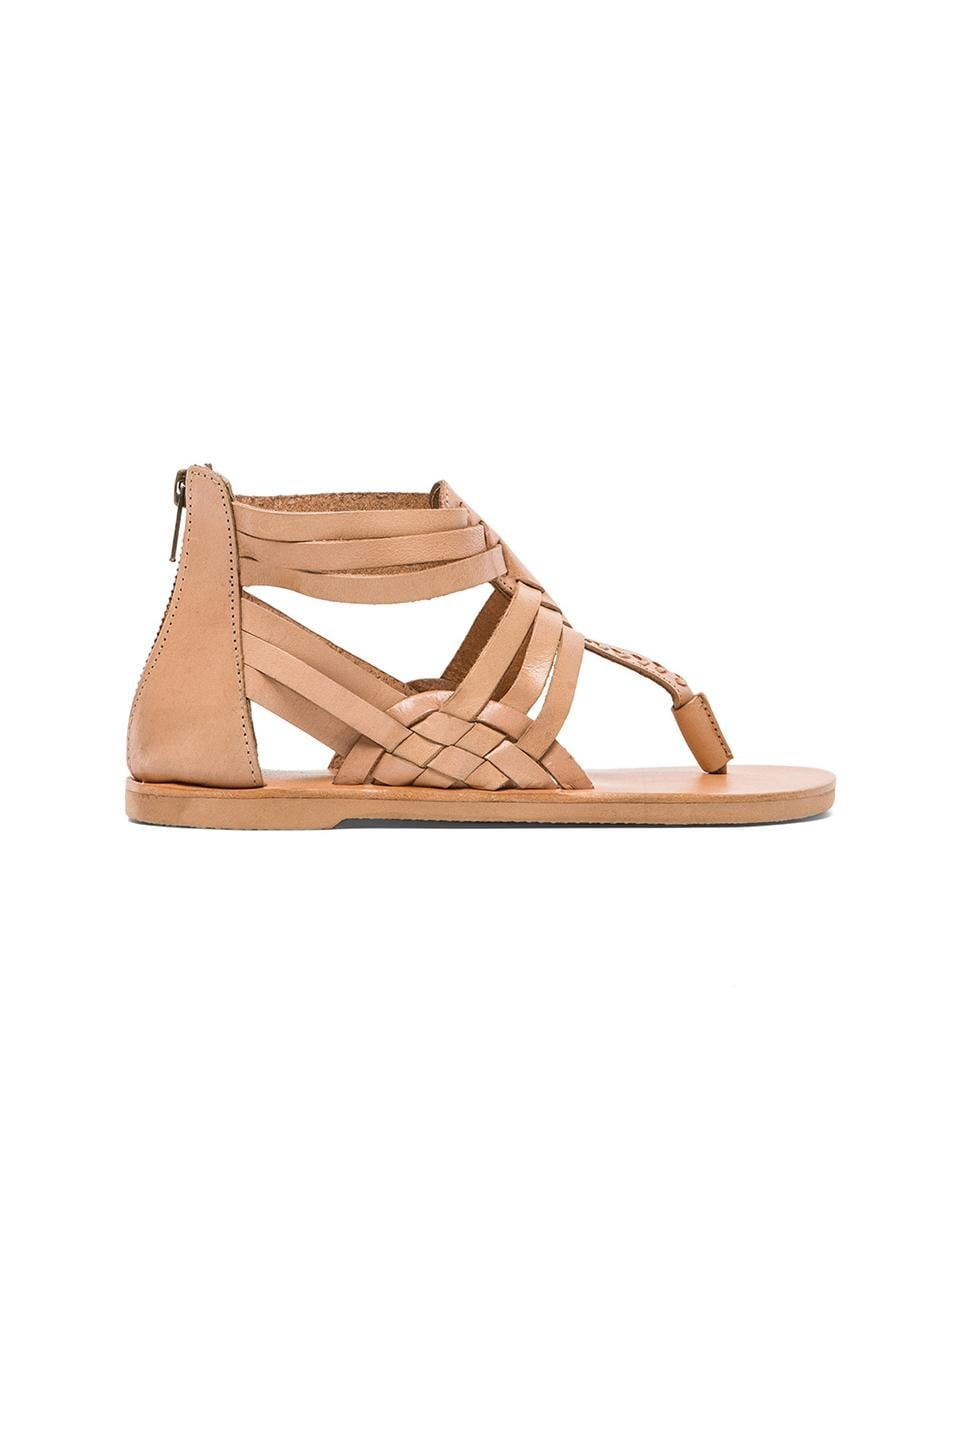 Matisse Elate Sandal in Natural